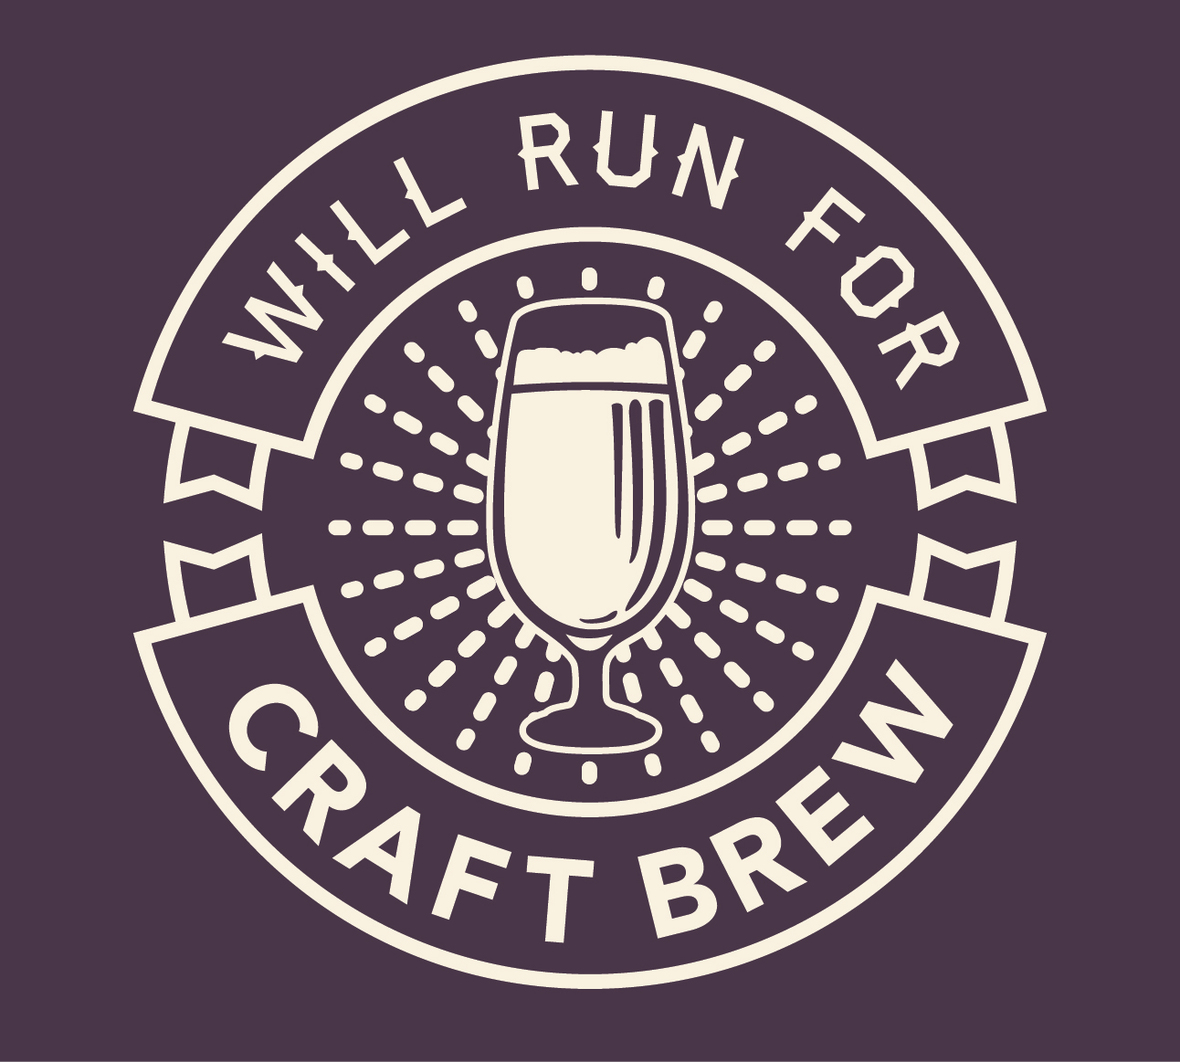 willrun4craftbeer